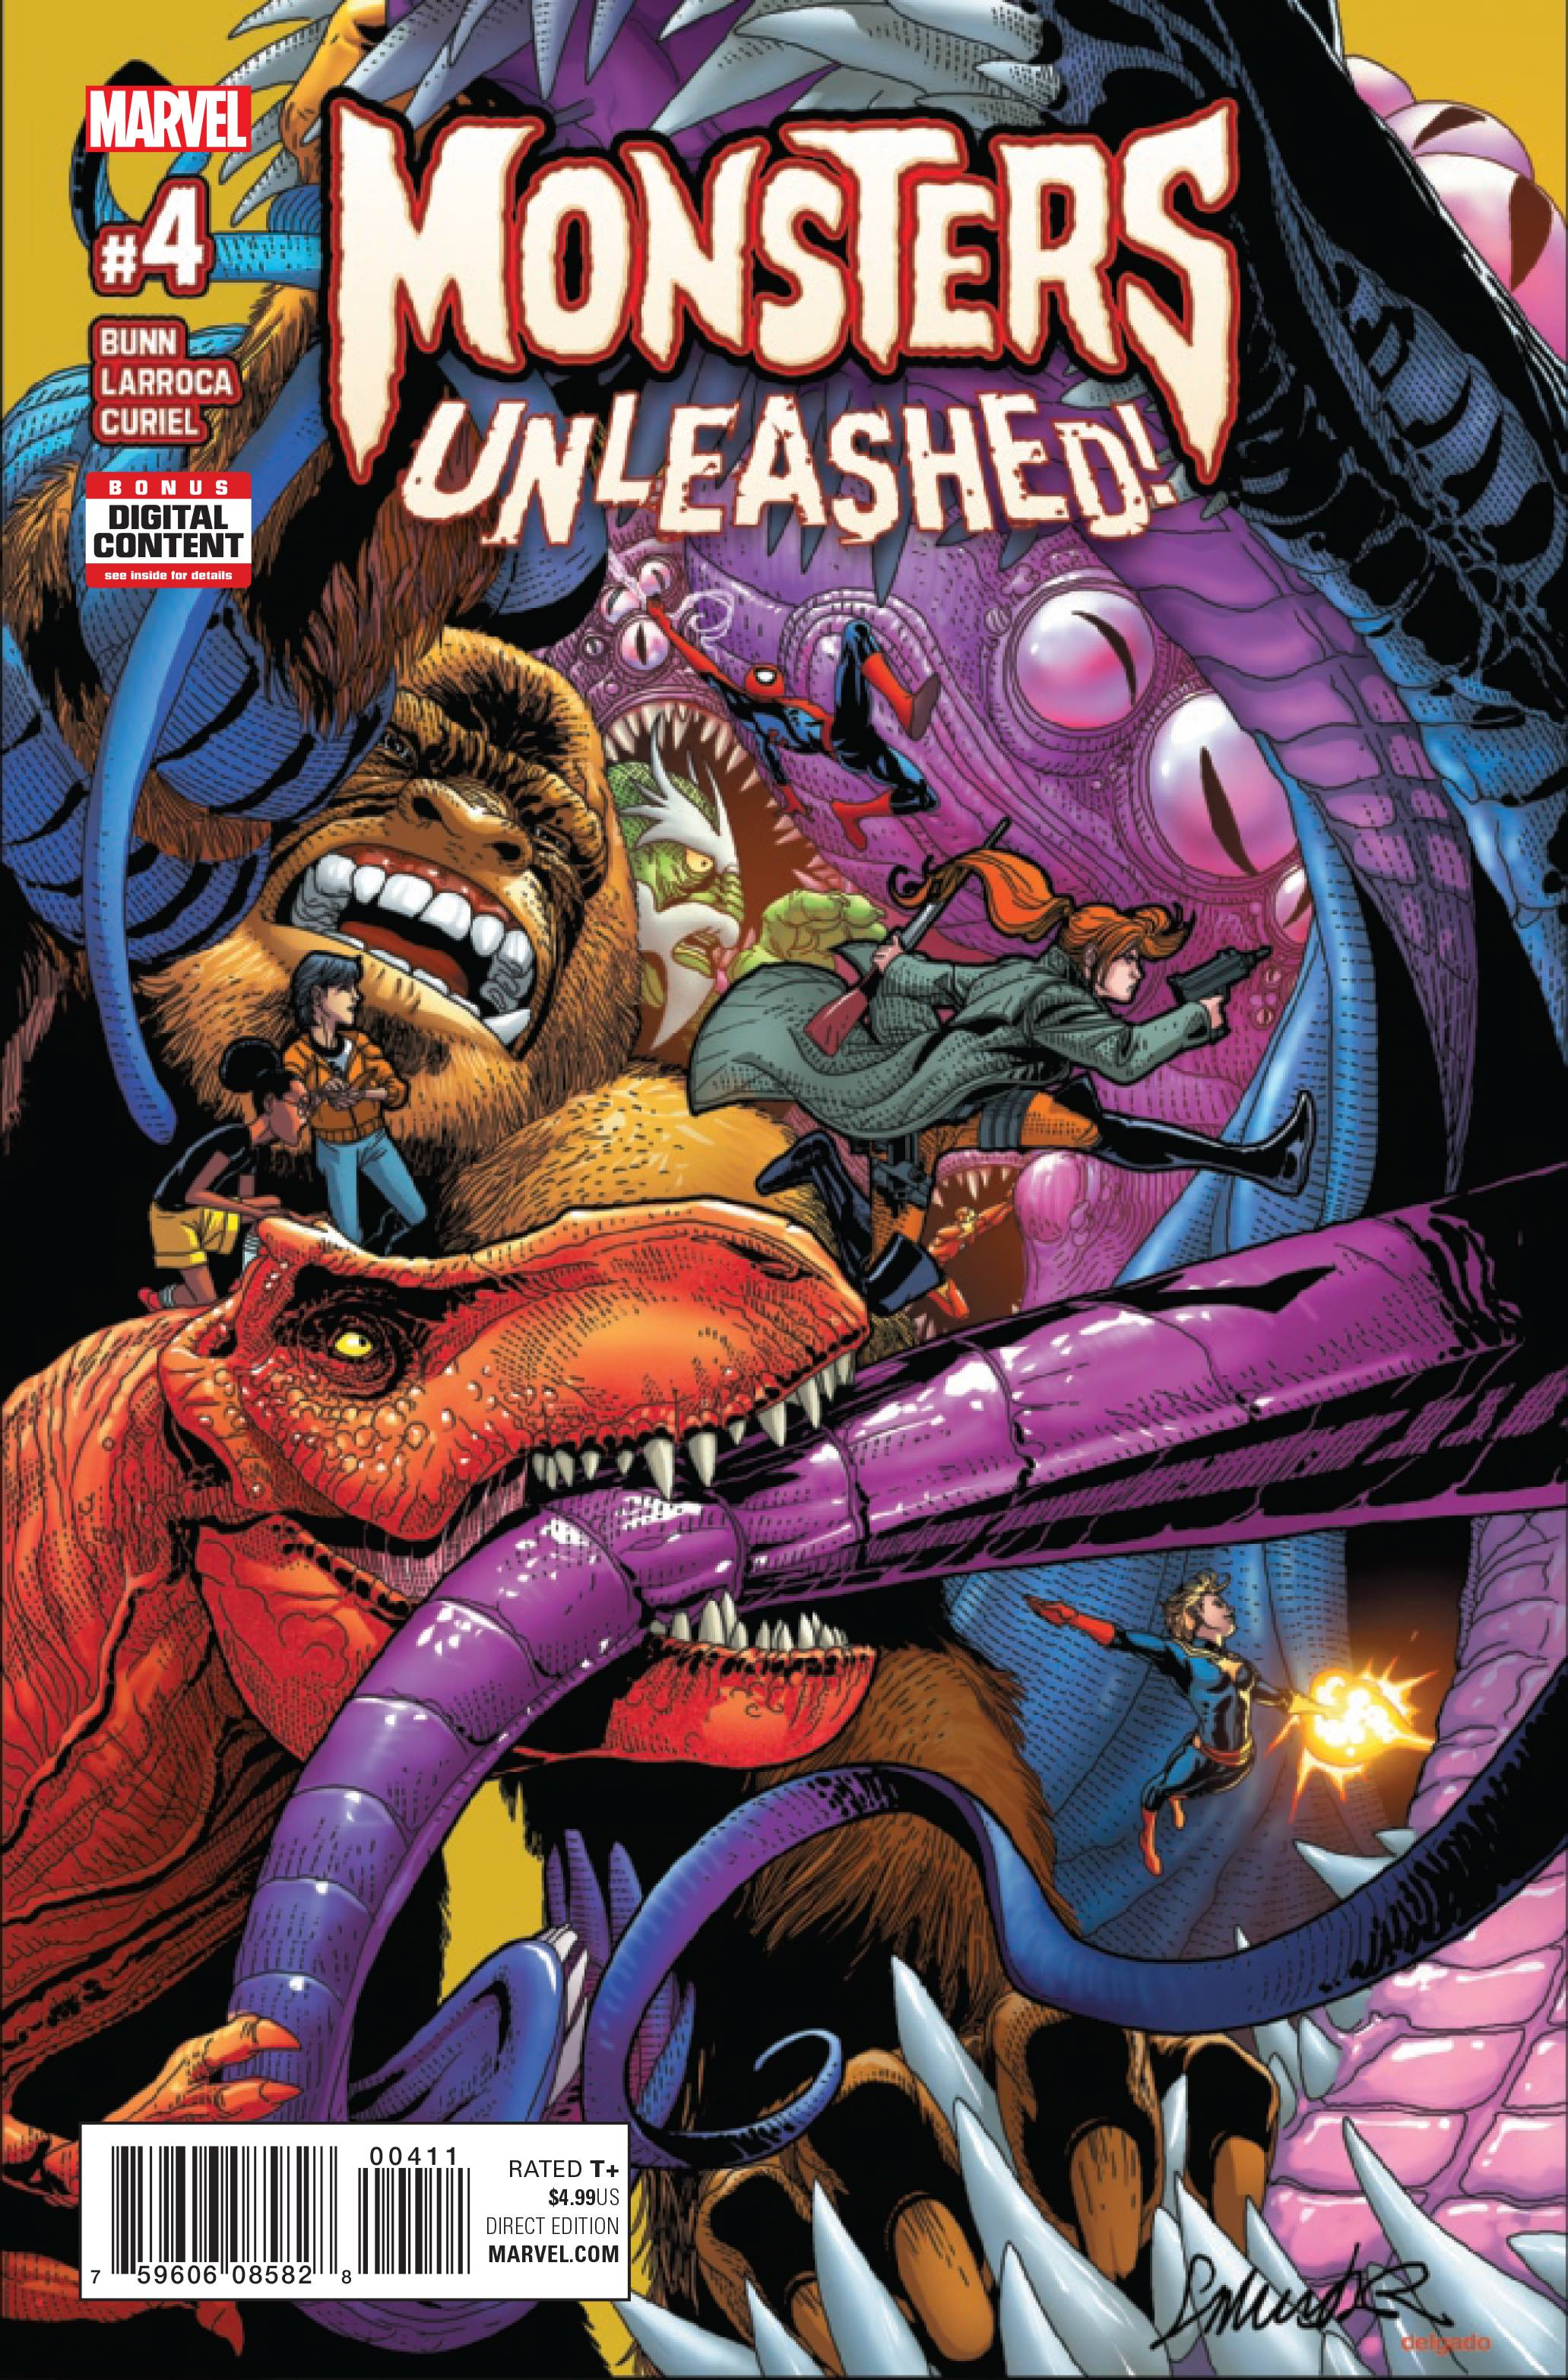 MONSTERS UNLEASHED #4